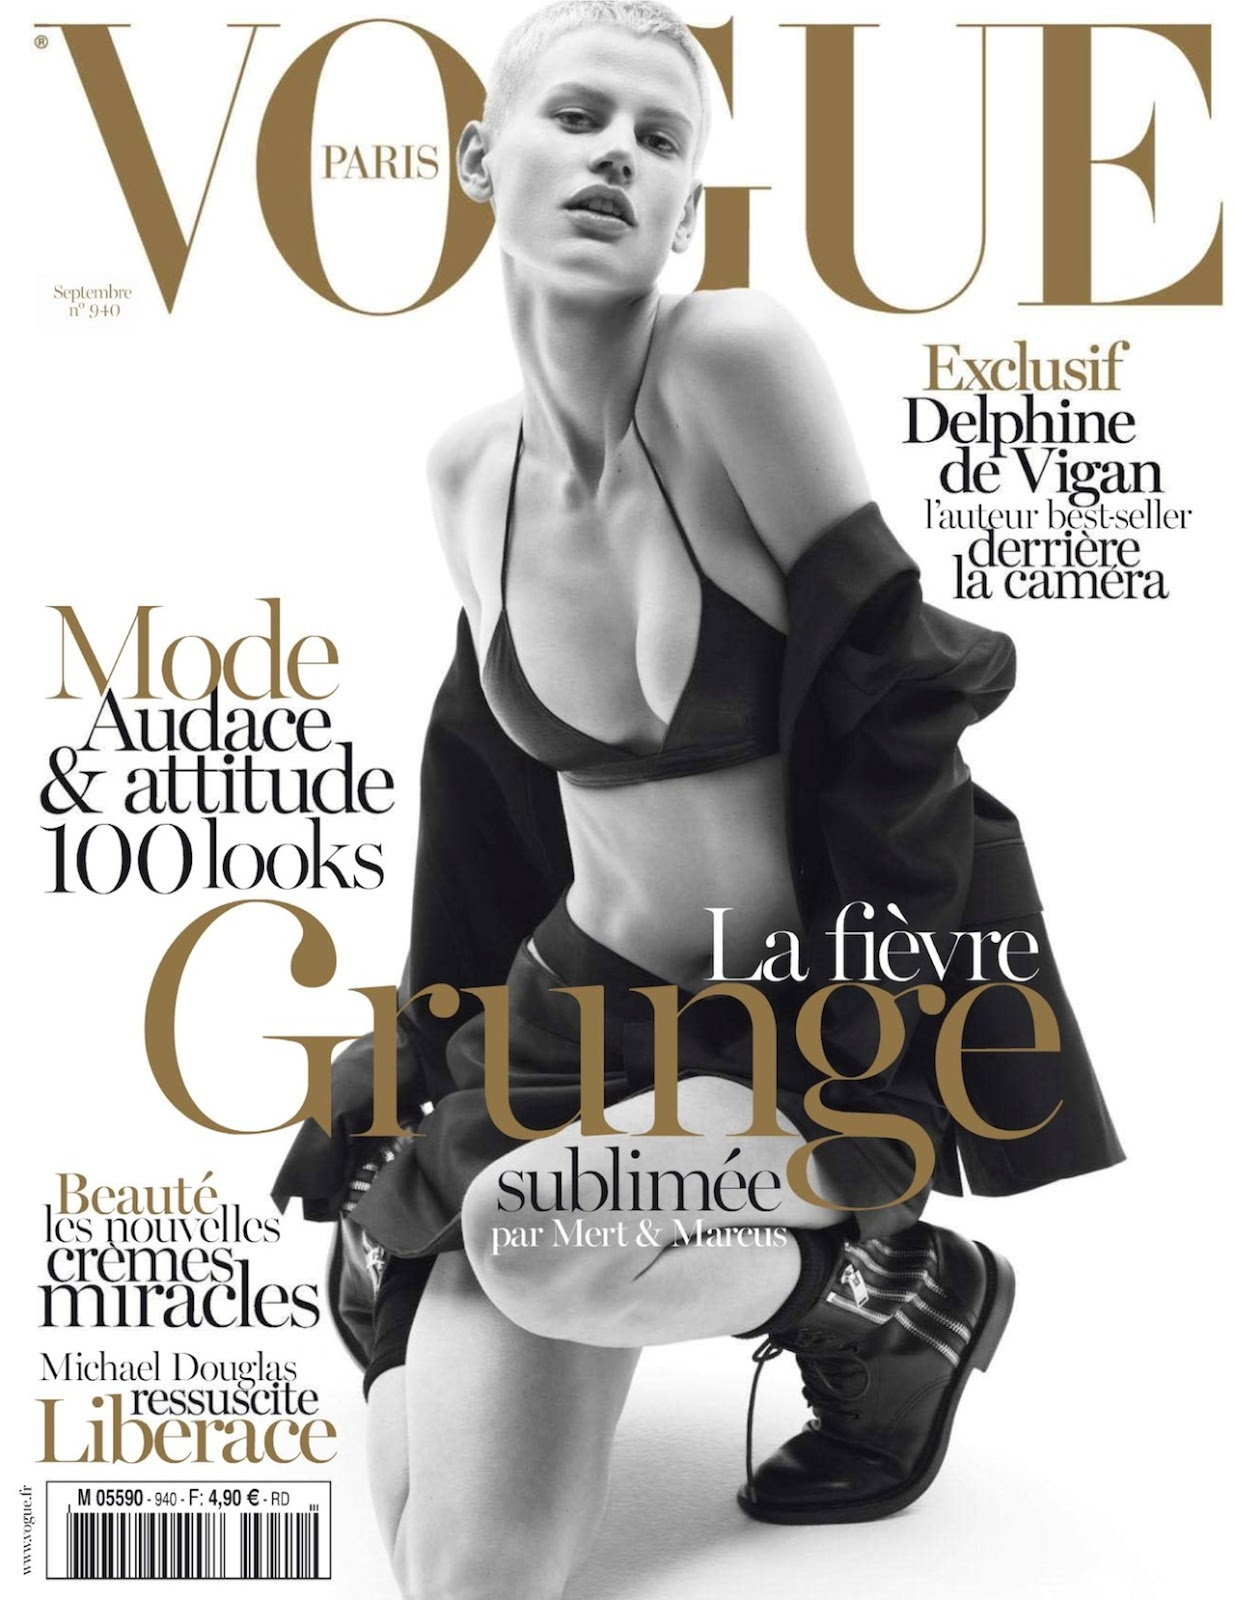 vogue-paris-2013-septembre (dragged)